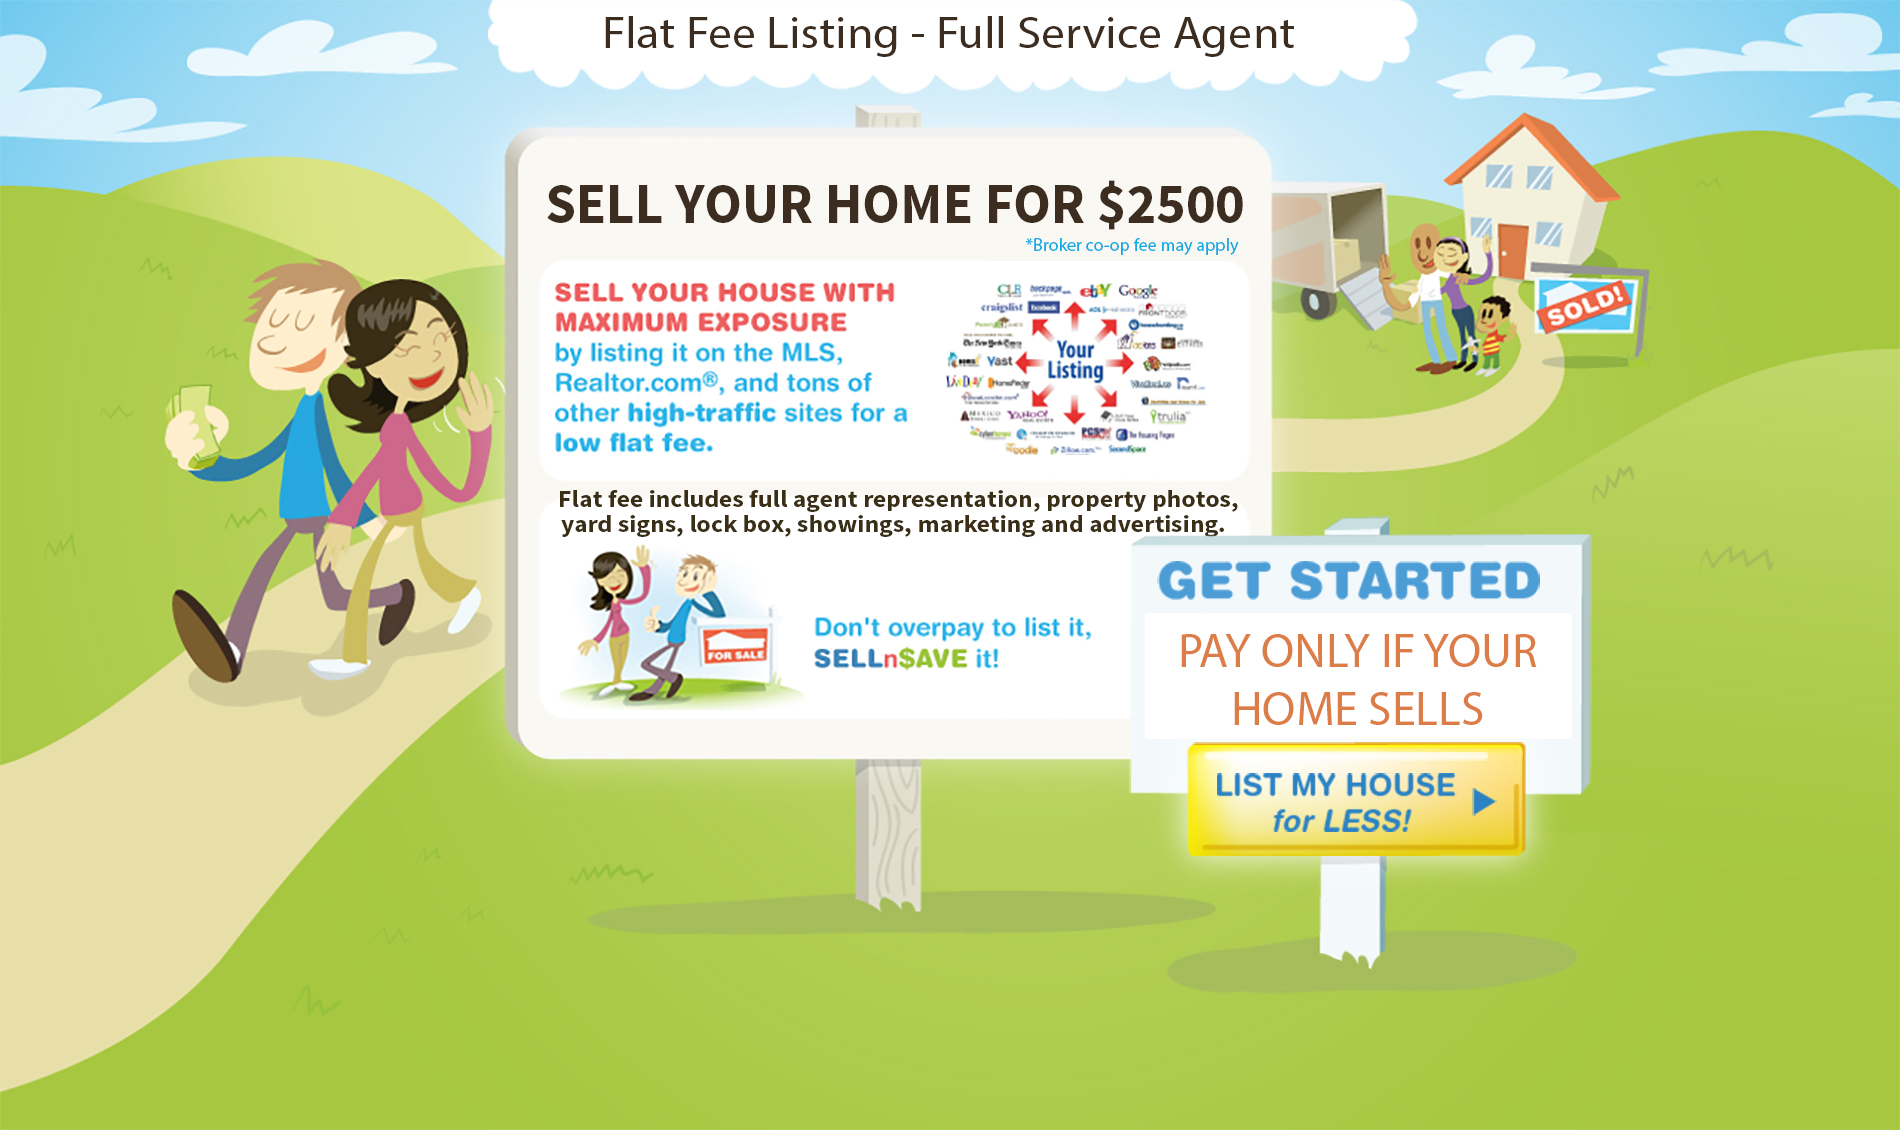 sellnsave – sell your home for $2500 – flat fee real estate